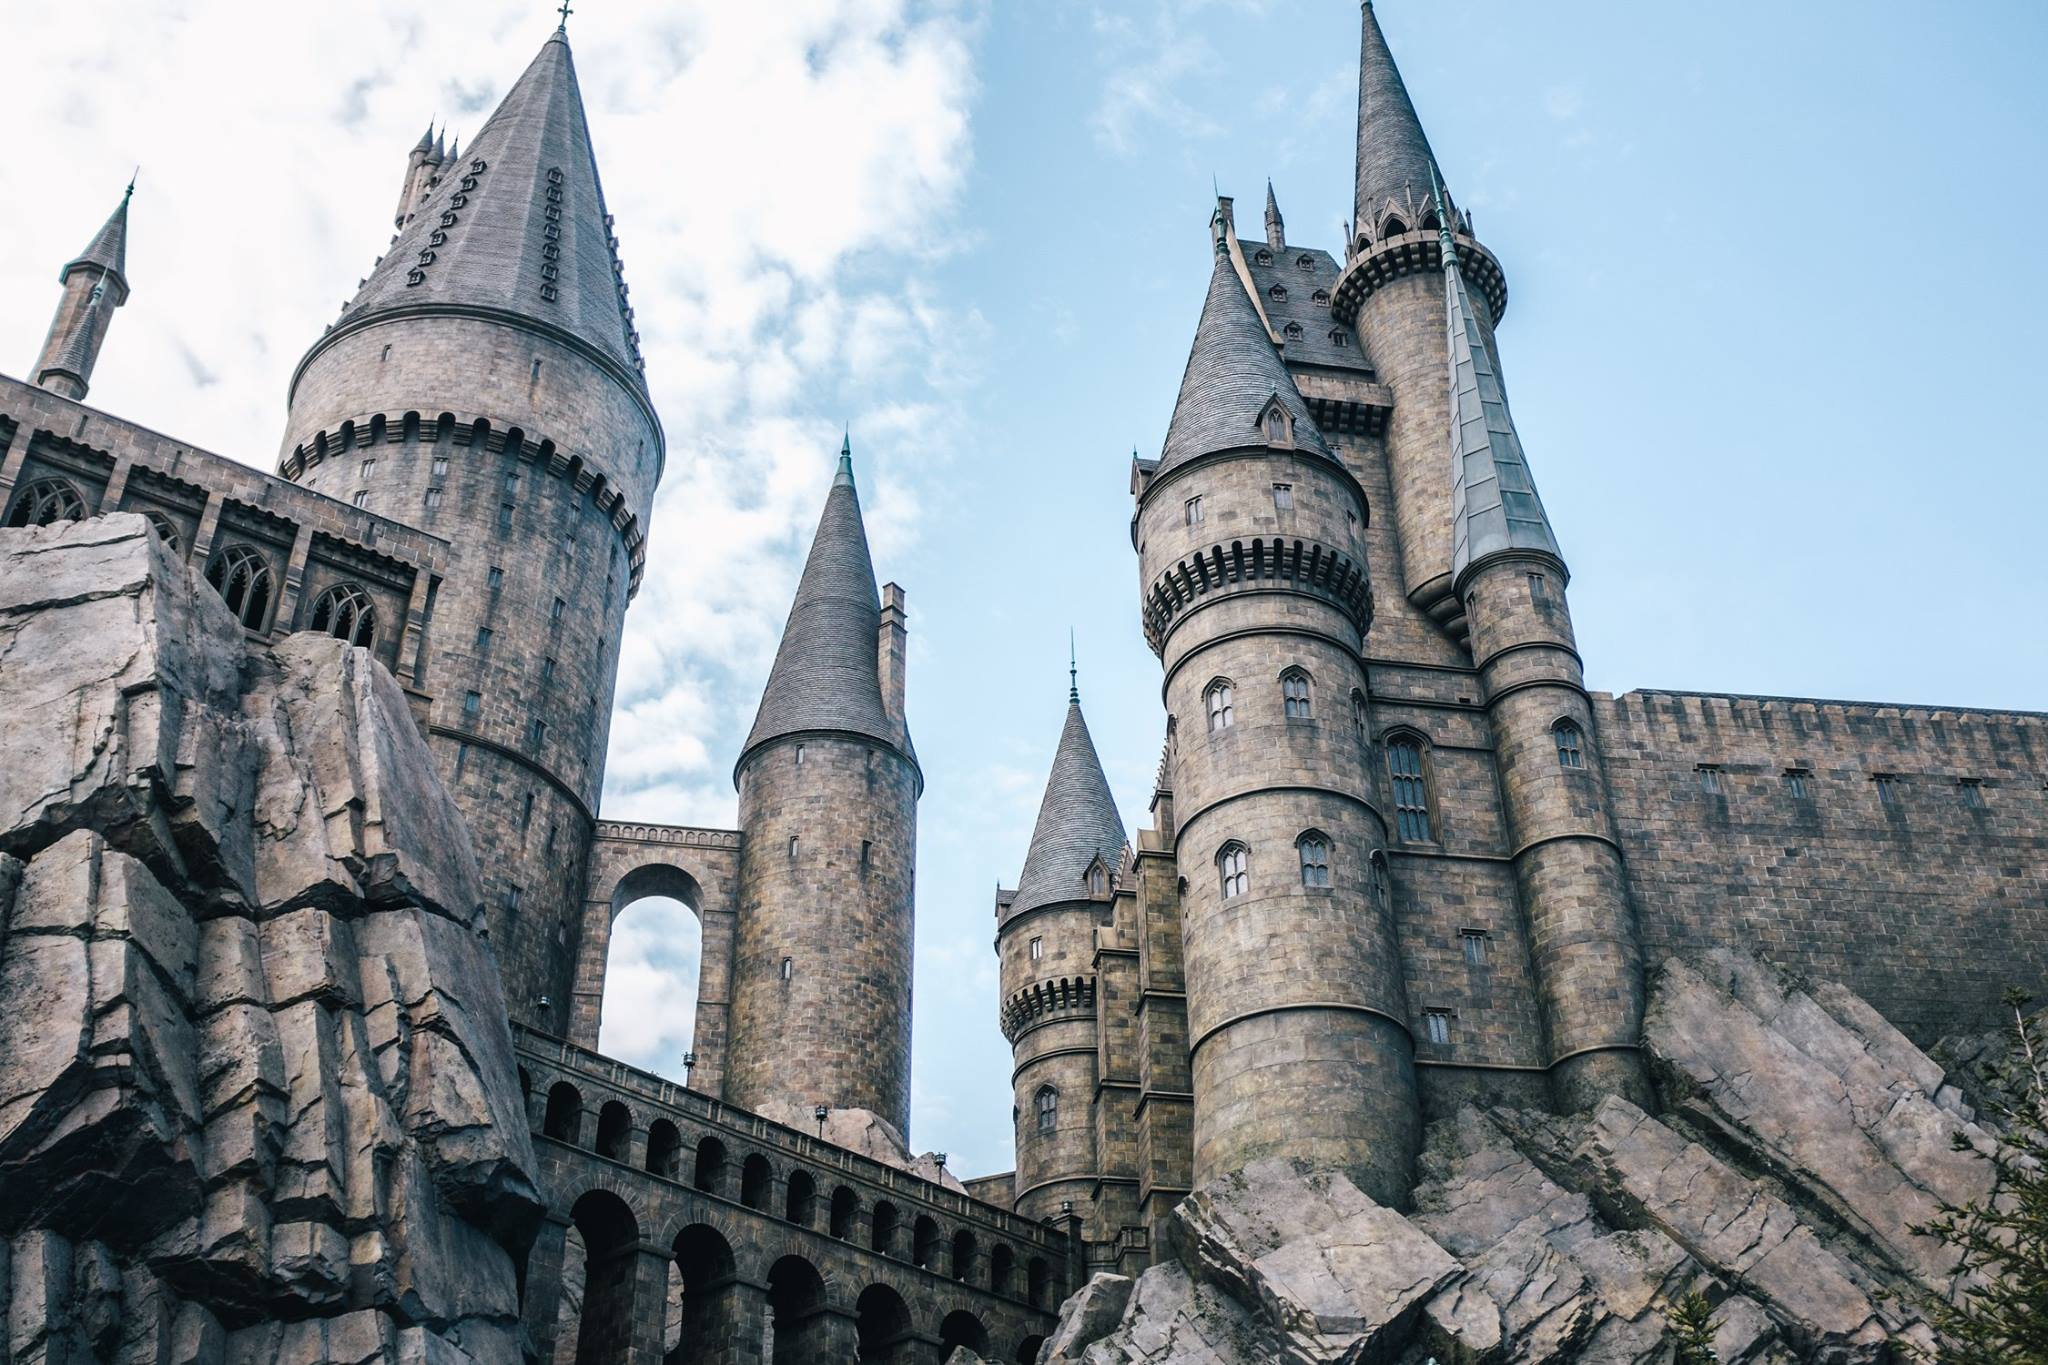 wizarding world of harry potter_maren-hald-bjorgum-1